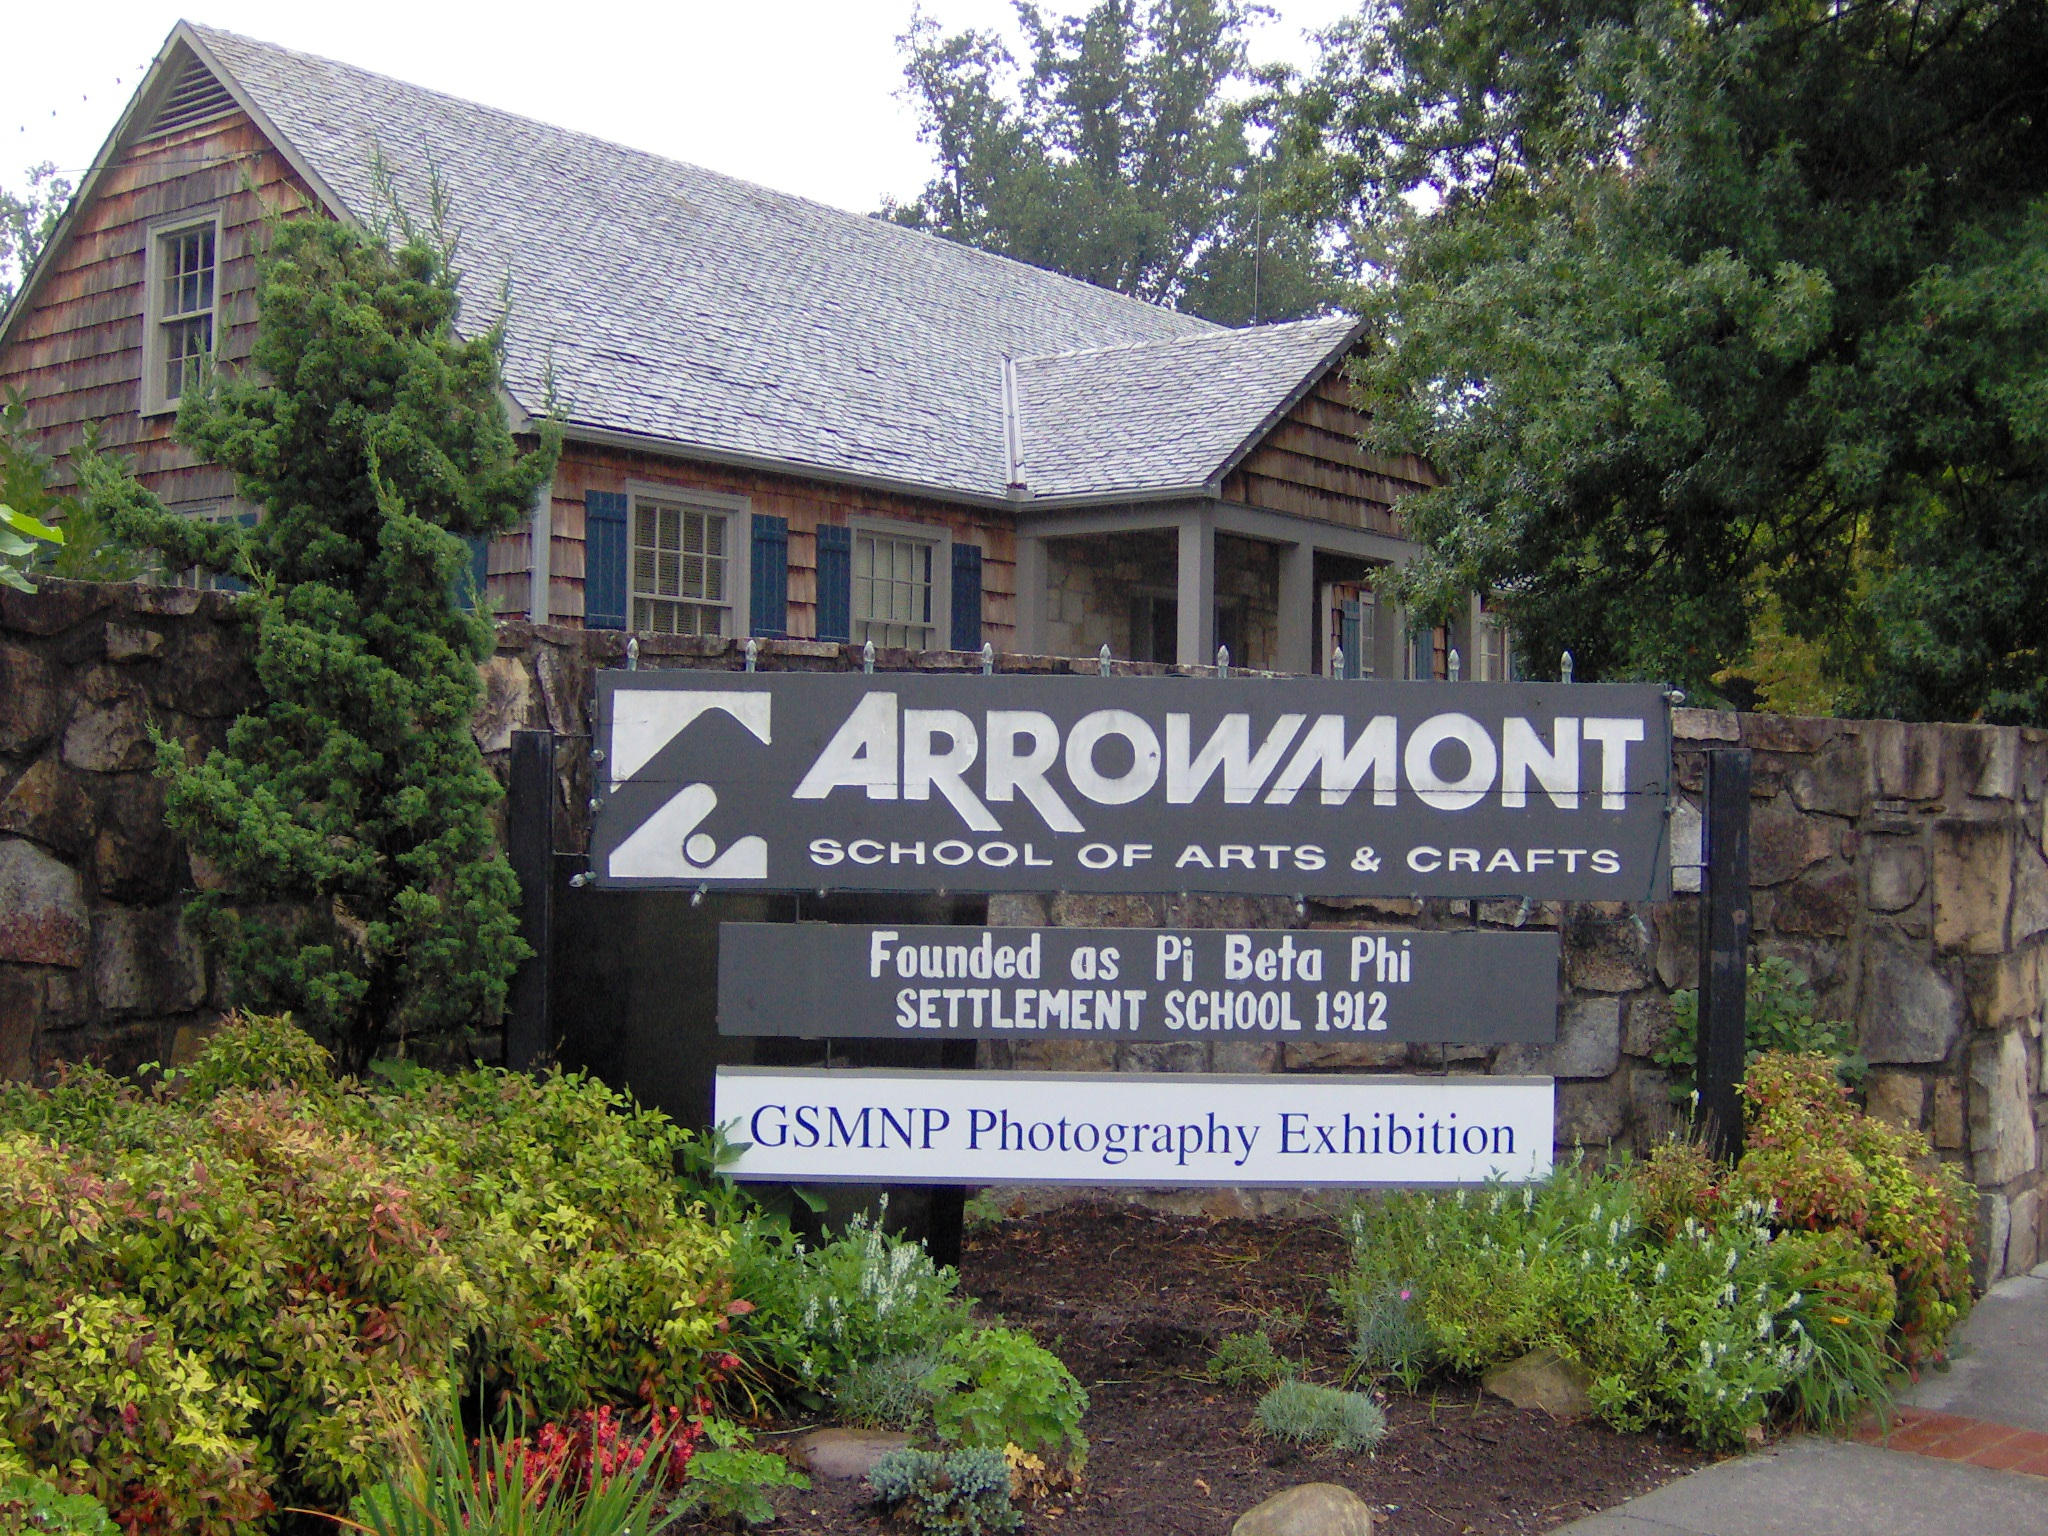 Arrowmont school of arts and crafts gatlinburg roadtrippers for Arts and crafts gatlinburg tn